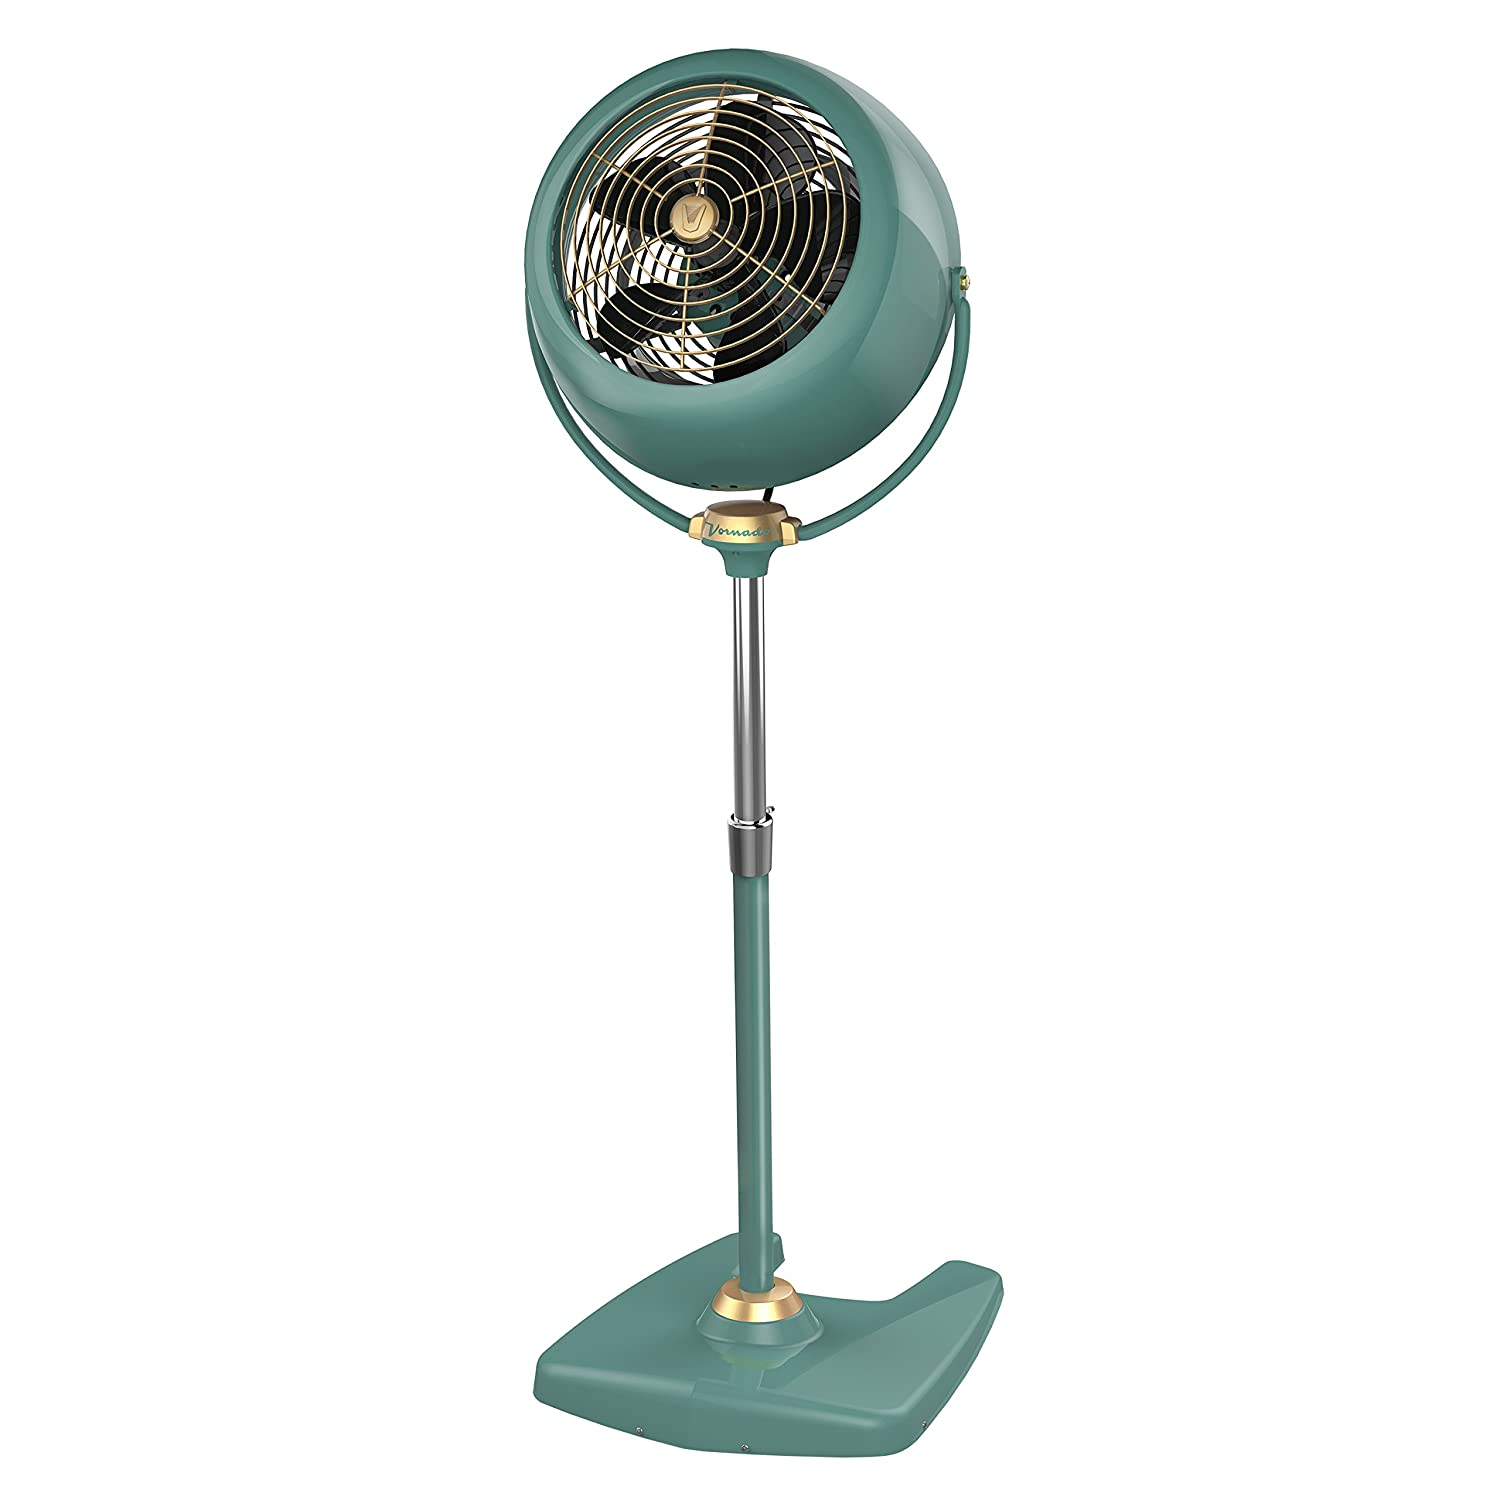 Vornado VFAN Sr. Pedestal Vintage Air Circulator Fan, Green